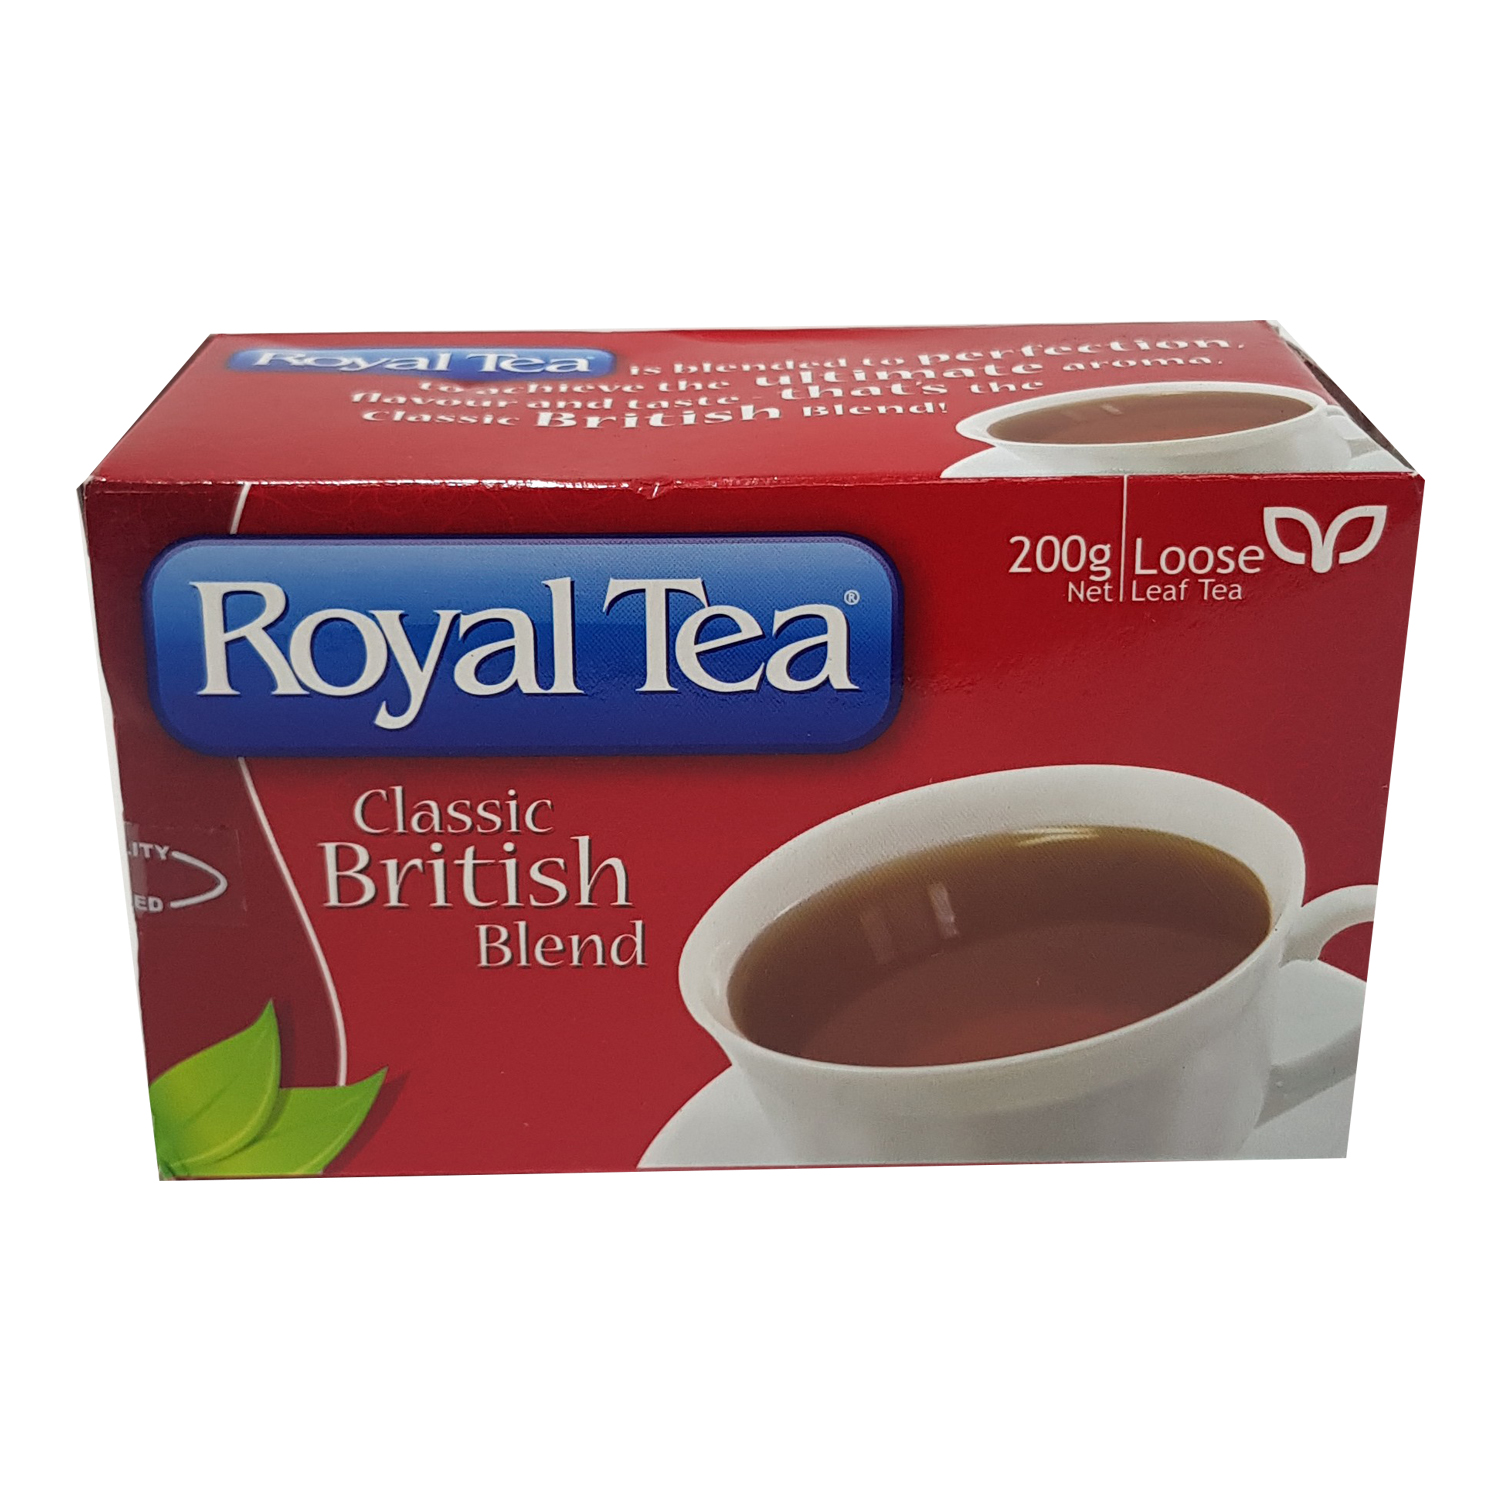 Royal Tea Leaves 200g